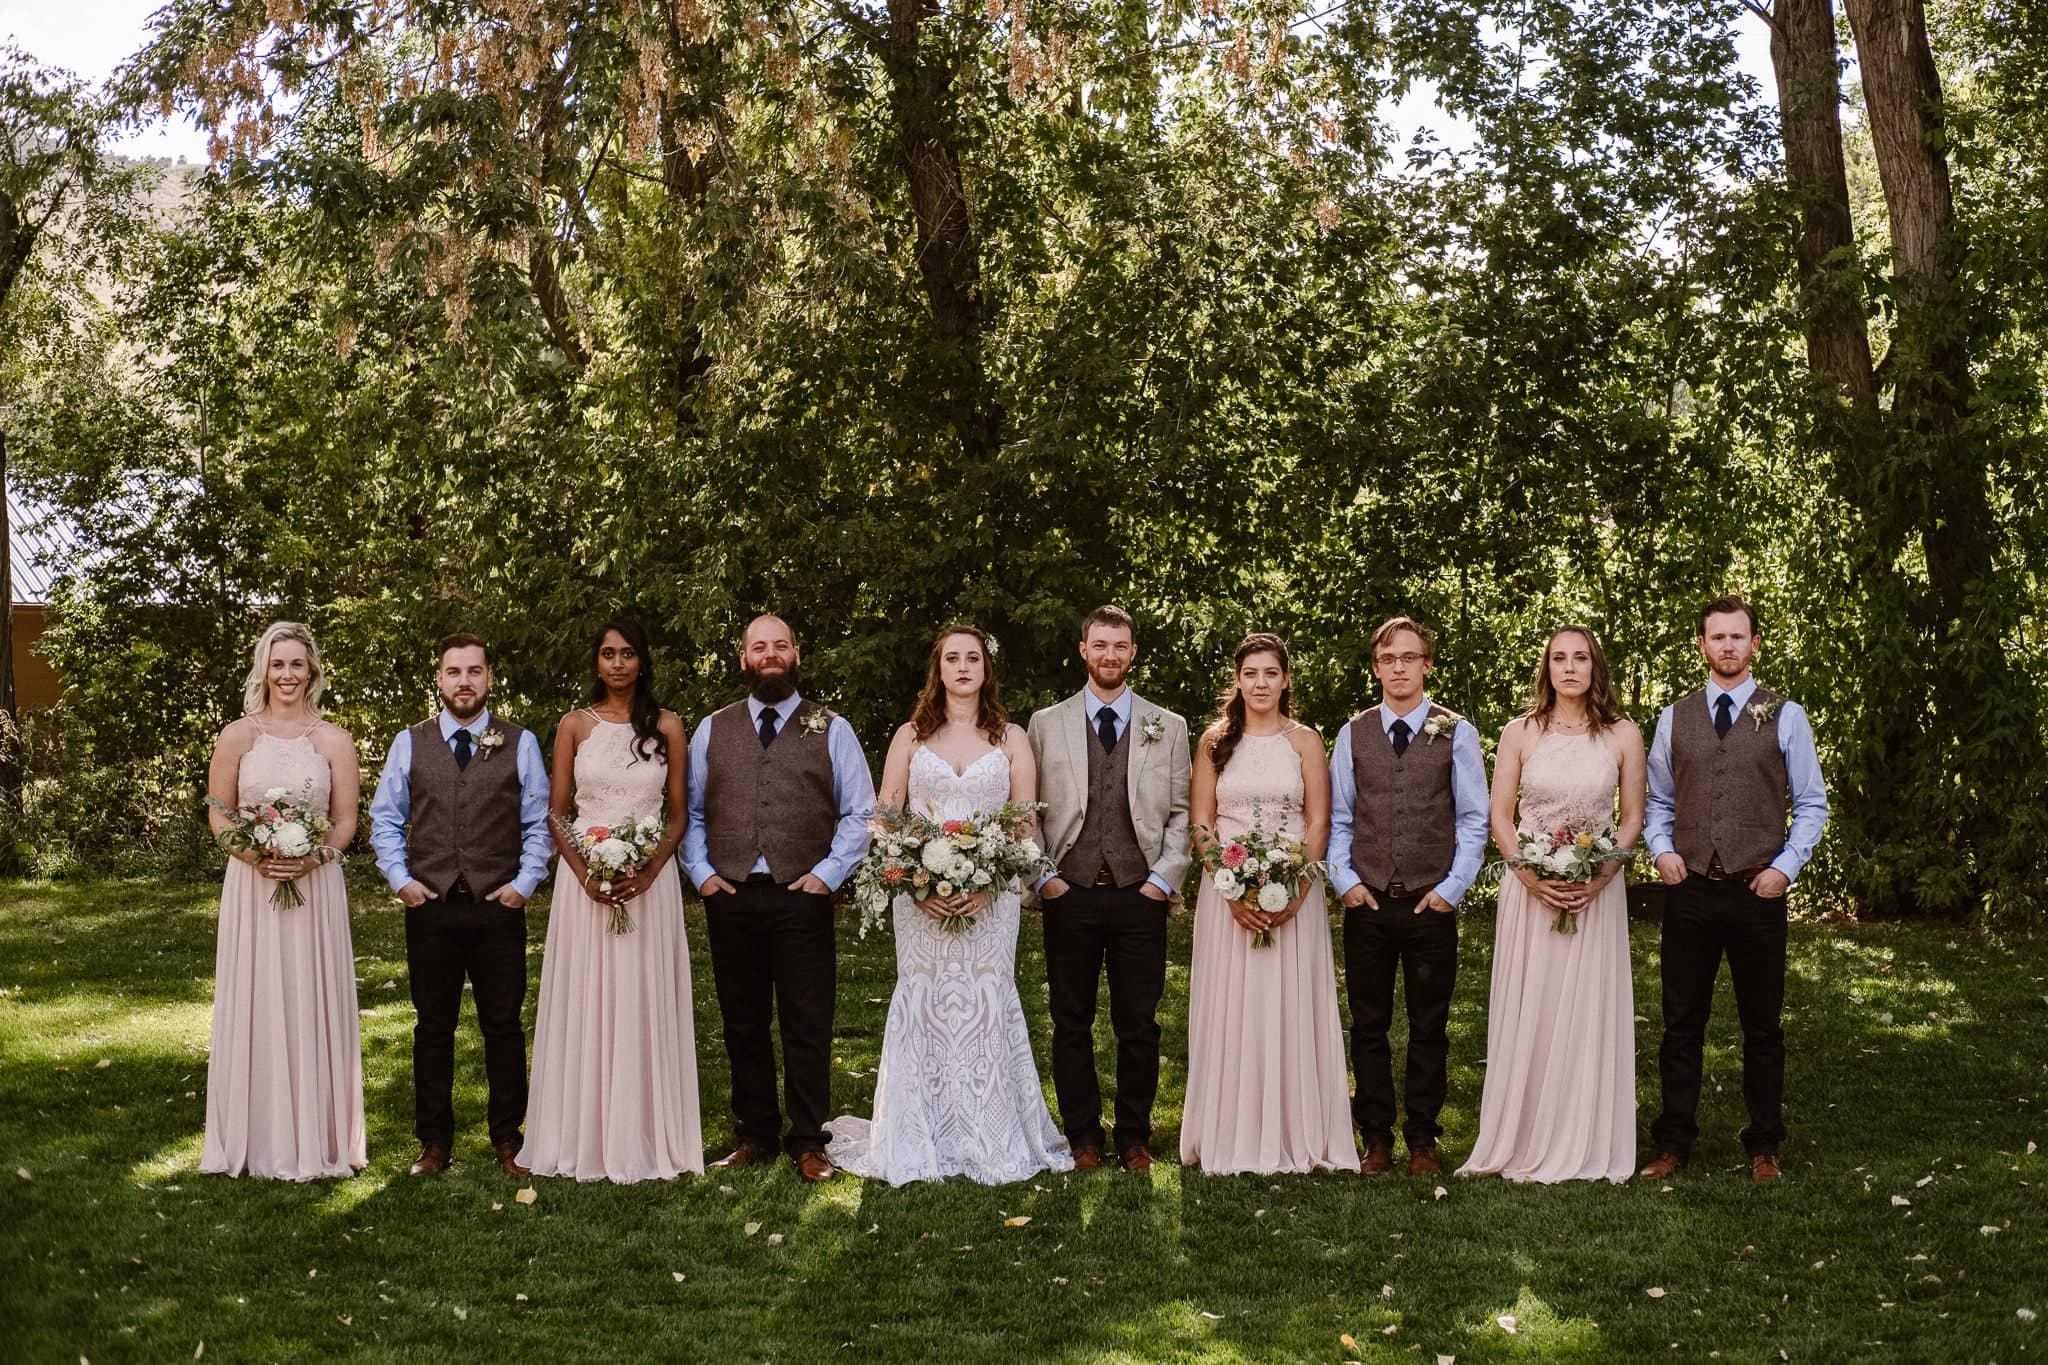 Lyons Farmette wedding photographer, Colorado intimate wedding photographer, wedding party photo, bridesmaids in dusty pink dresses, groomsmen wearing vests